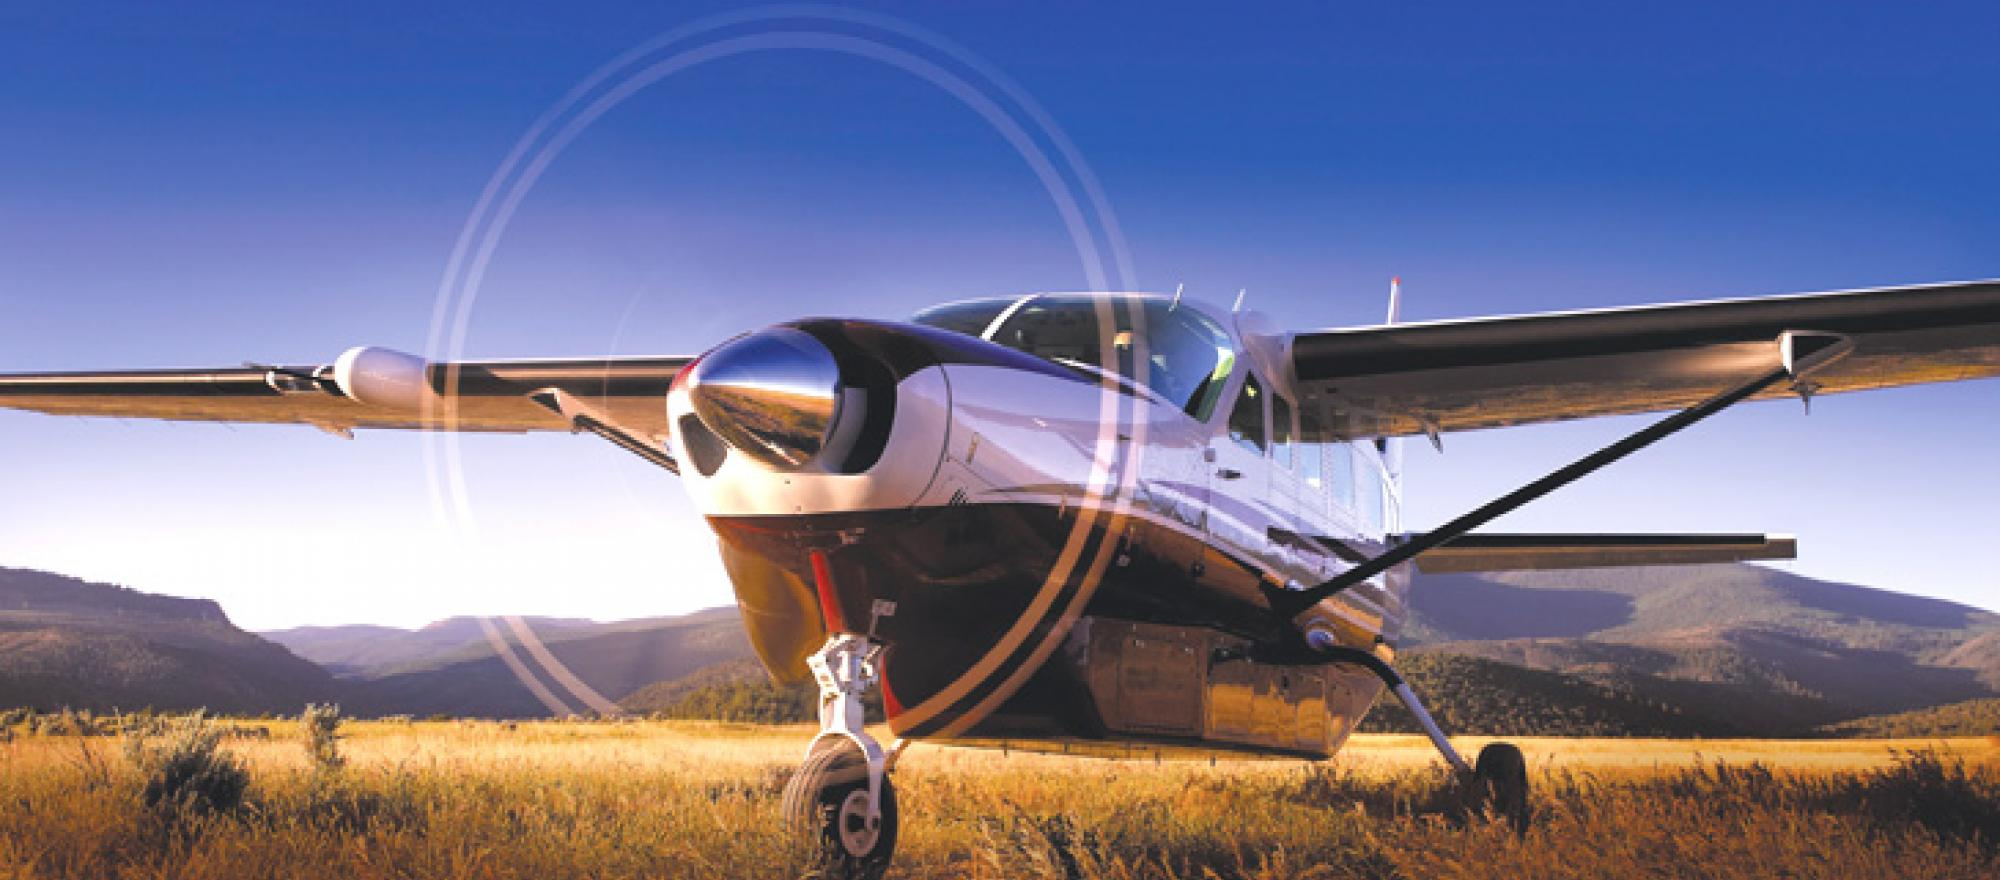 With its unpressurized cabin and relatively slow cruise speeds, this single-e